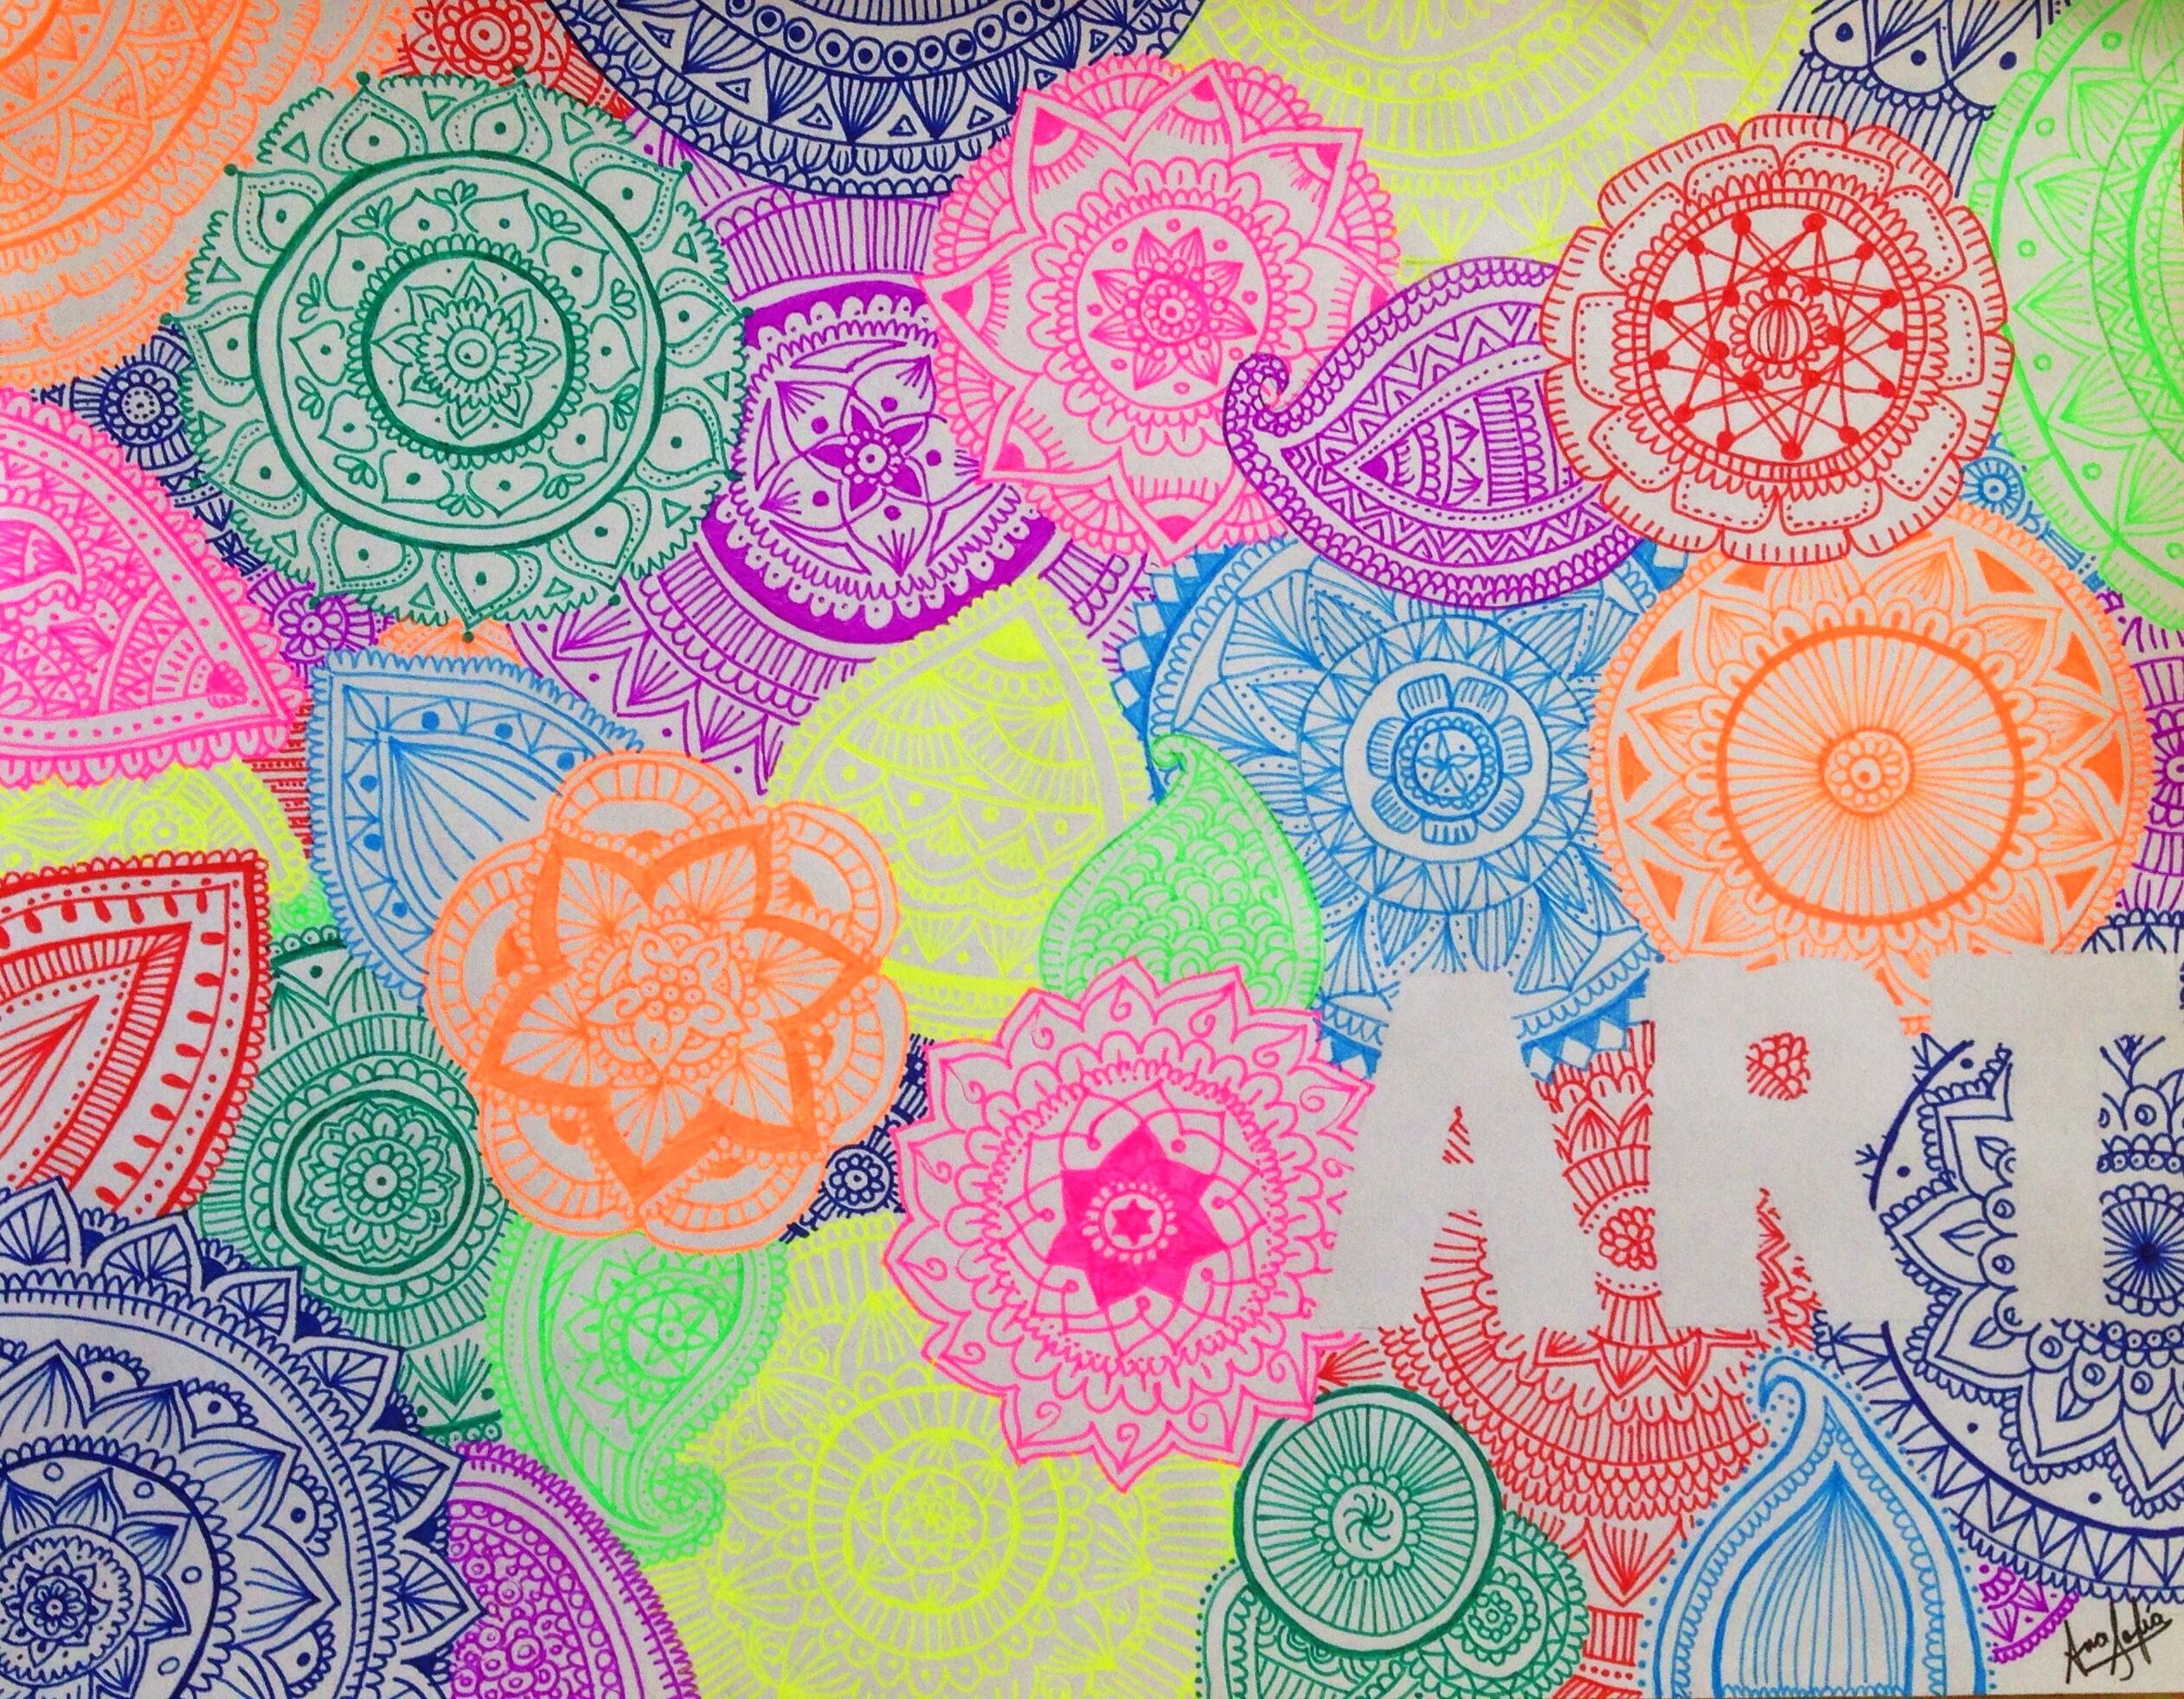 I'm just in love with thisss♥️  #art #love #drawingoftheday #drawing #mandala #zentangle #doodle